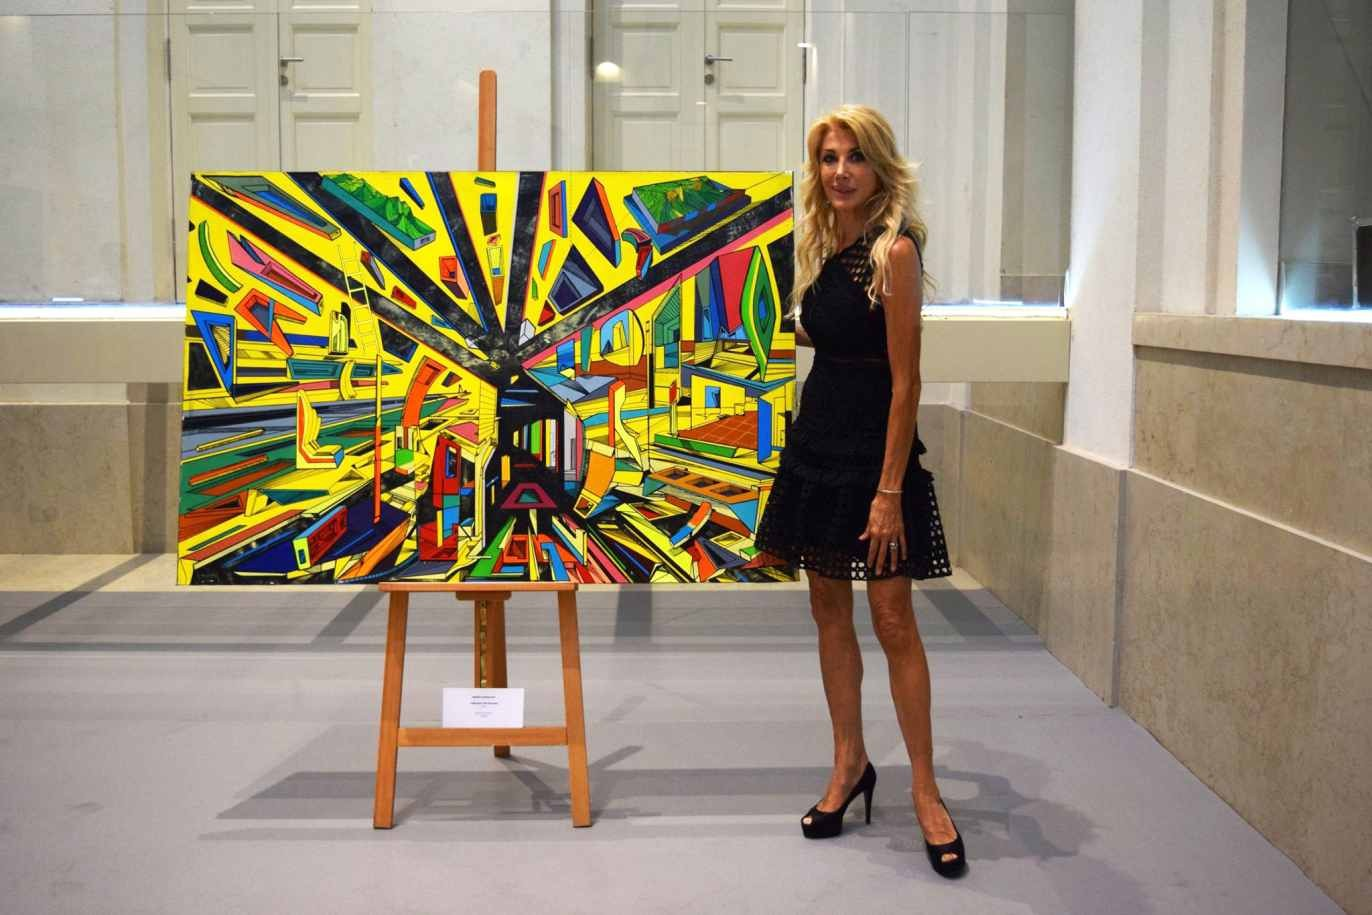 Gabriella Carlucci organizer i director of the Festival, artwork Marko Gavrilovic, Through the passage, acrylic on canvas